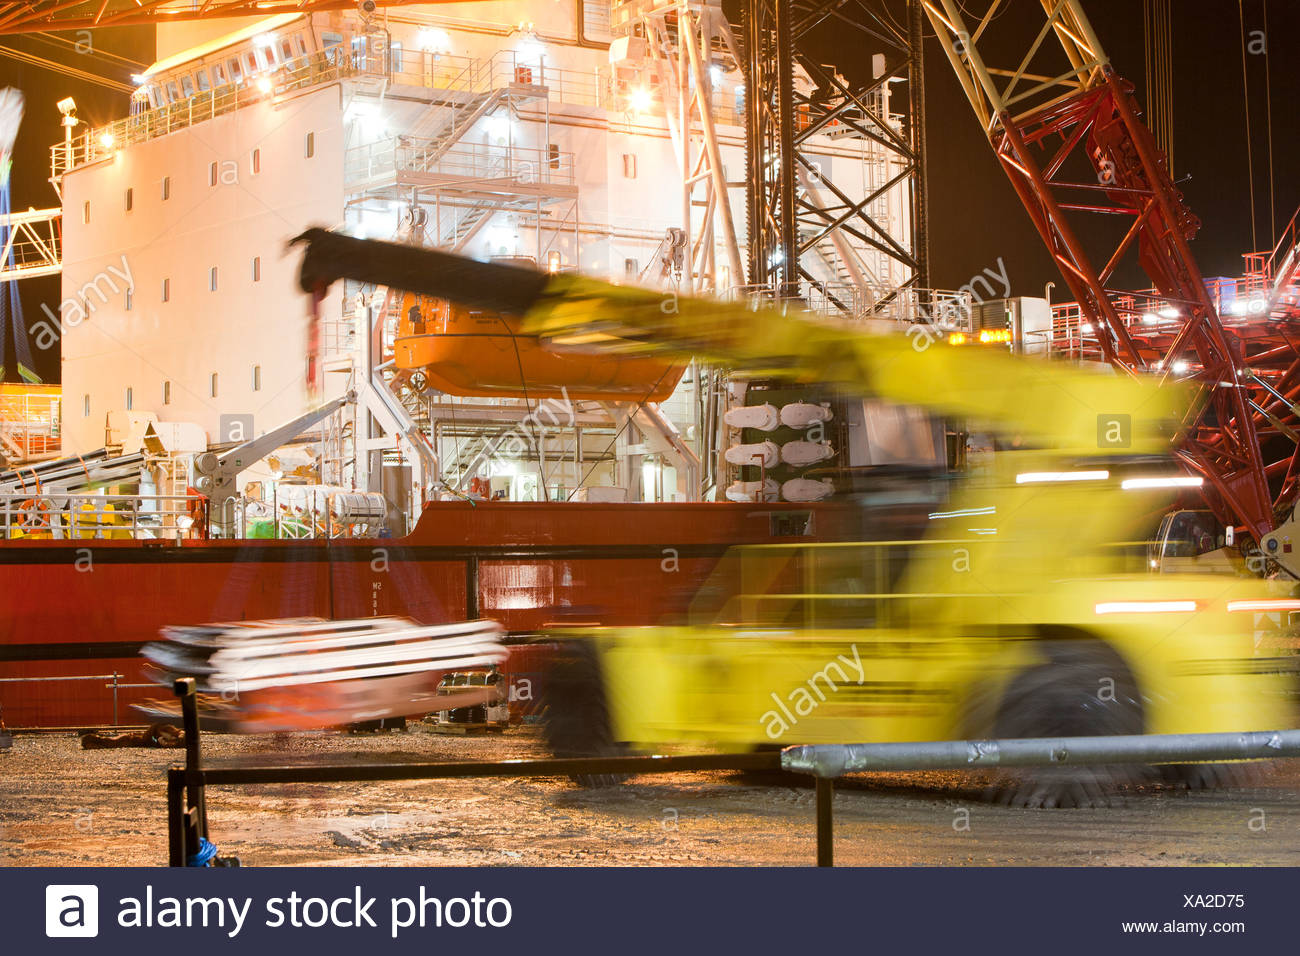 a jack up barge loading wind turbine parts on the docks at